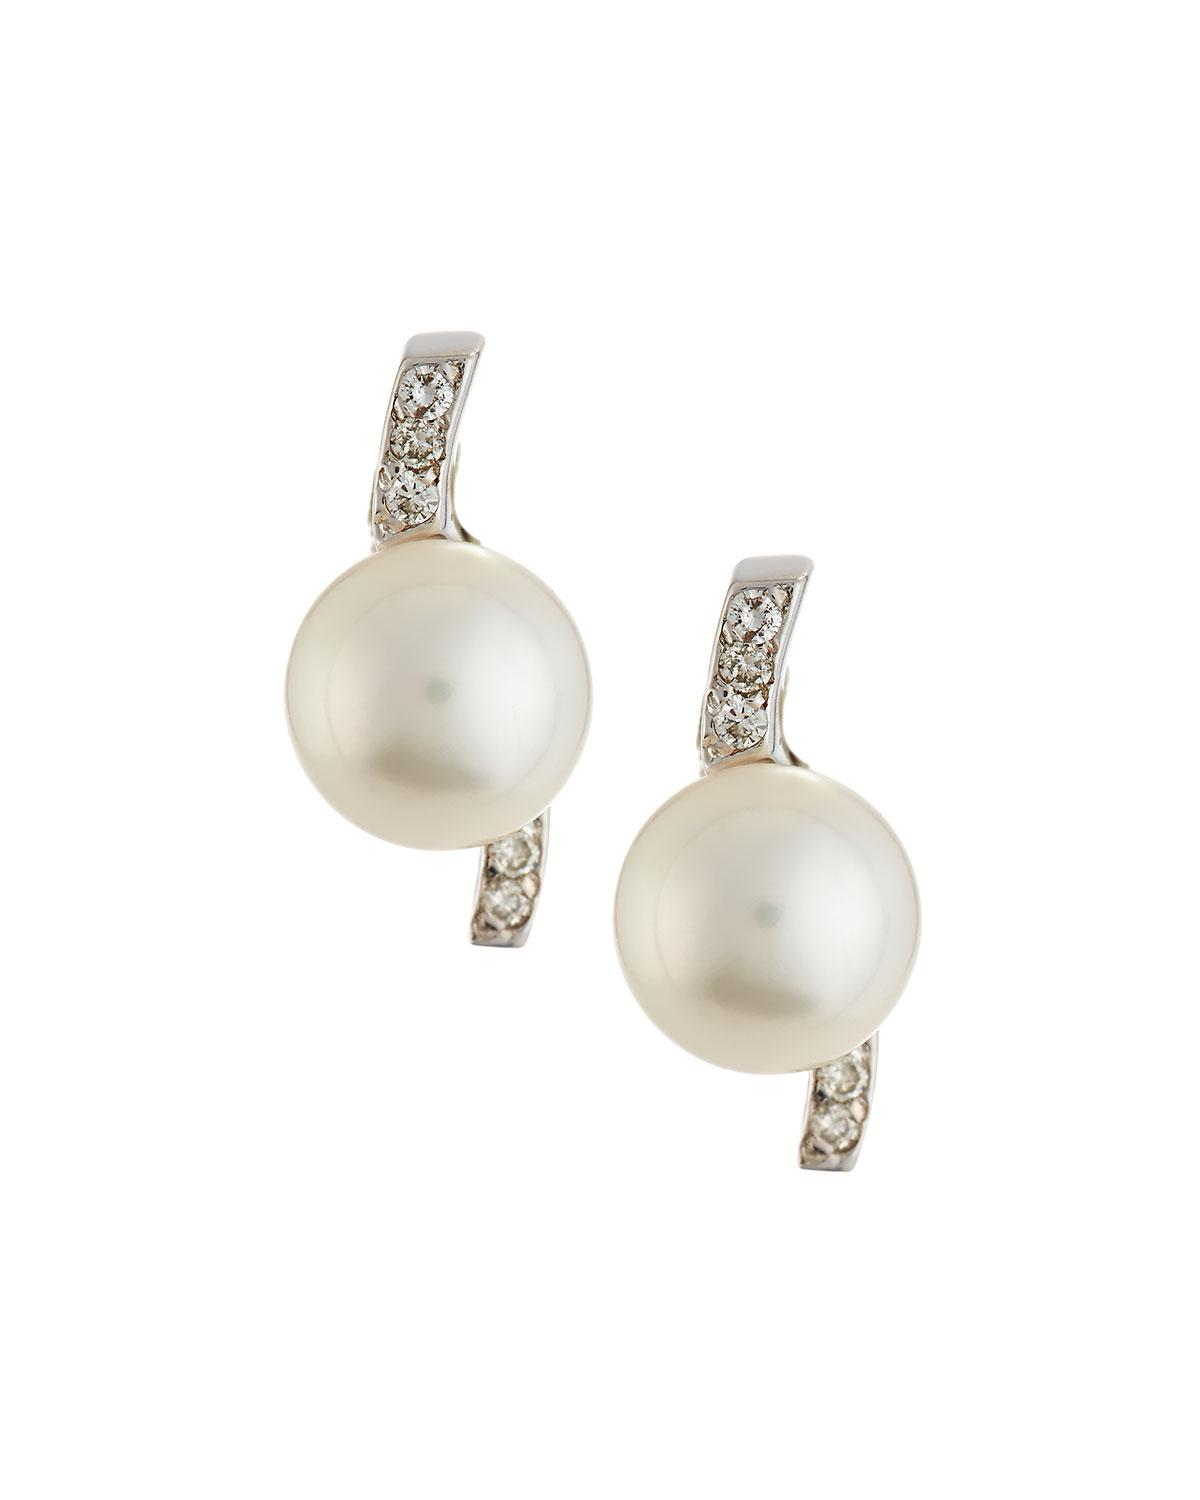 Belpearl Diamond-Cap Oblong Akoya Pearl Earrings kSOeDuVFR